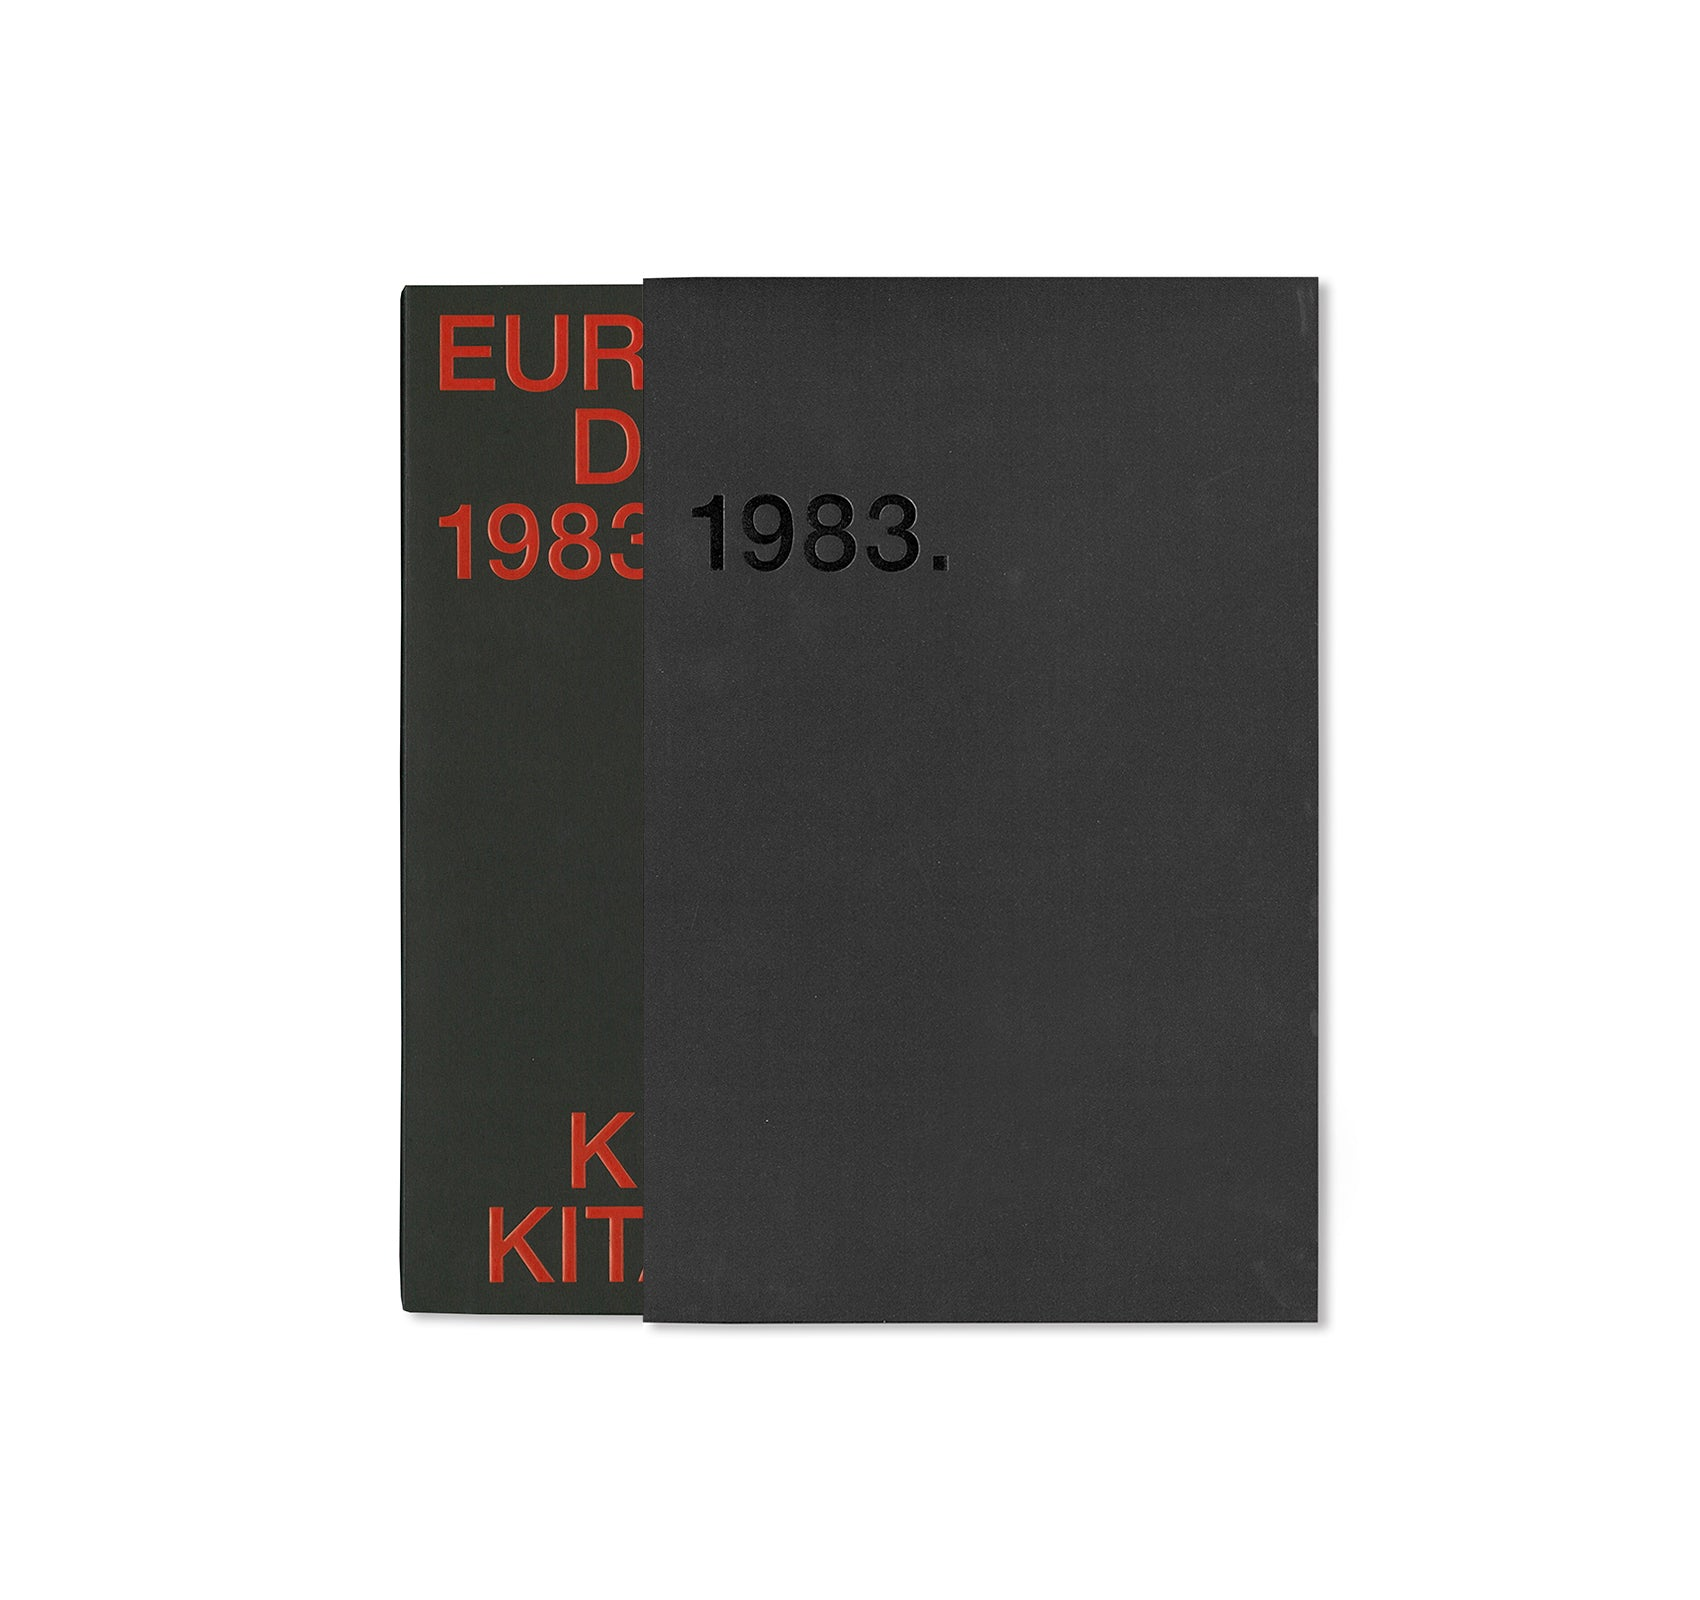 EUROPEAN DIARY 1983-1984 by Keizo Kitajima [SIGNED]